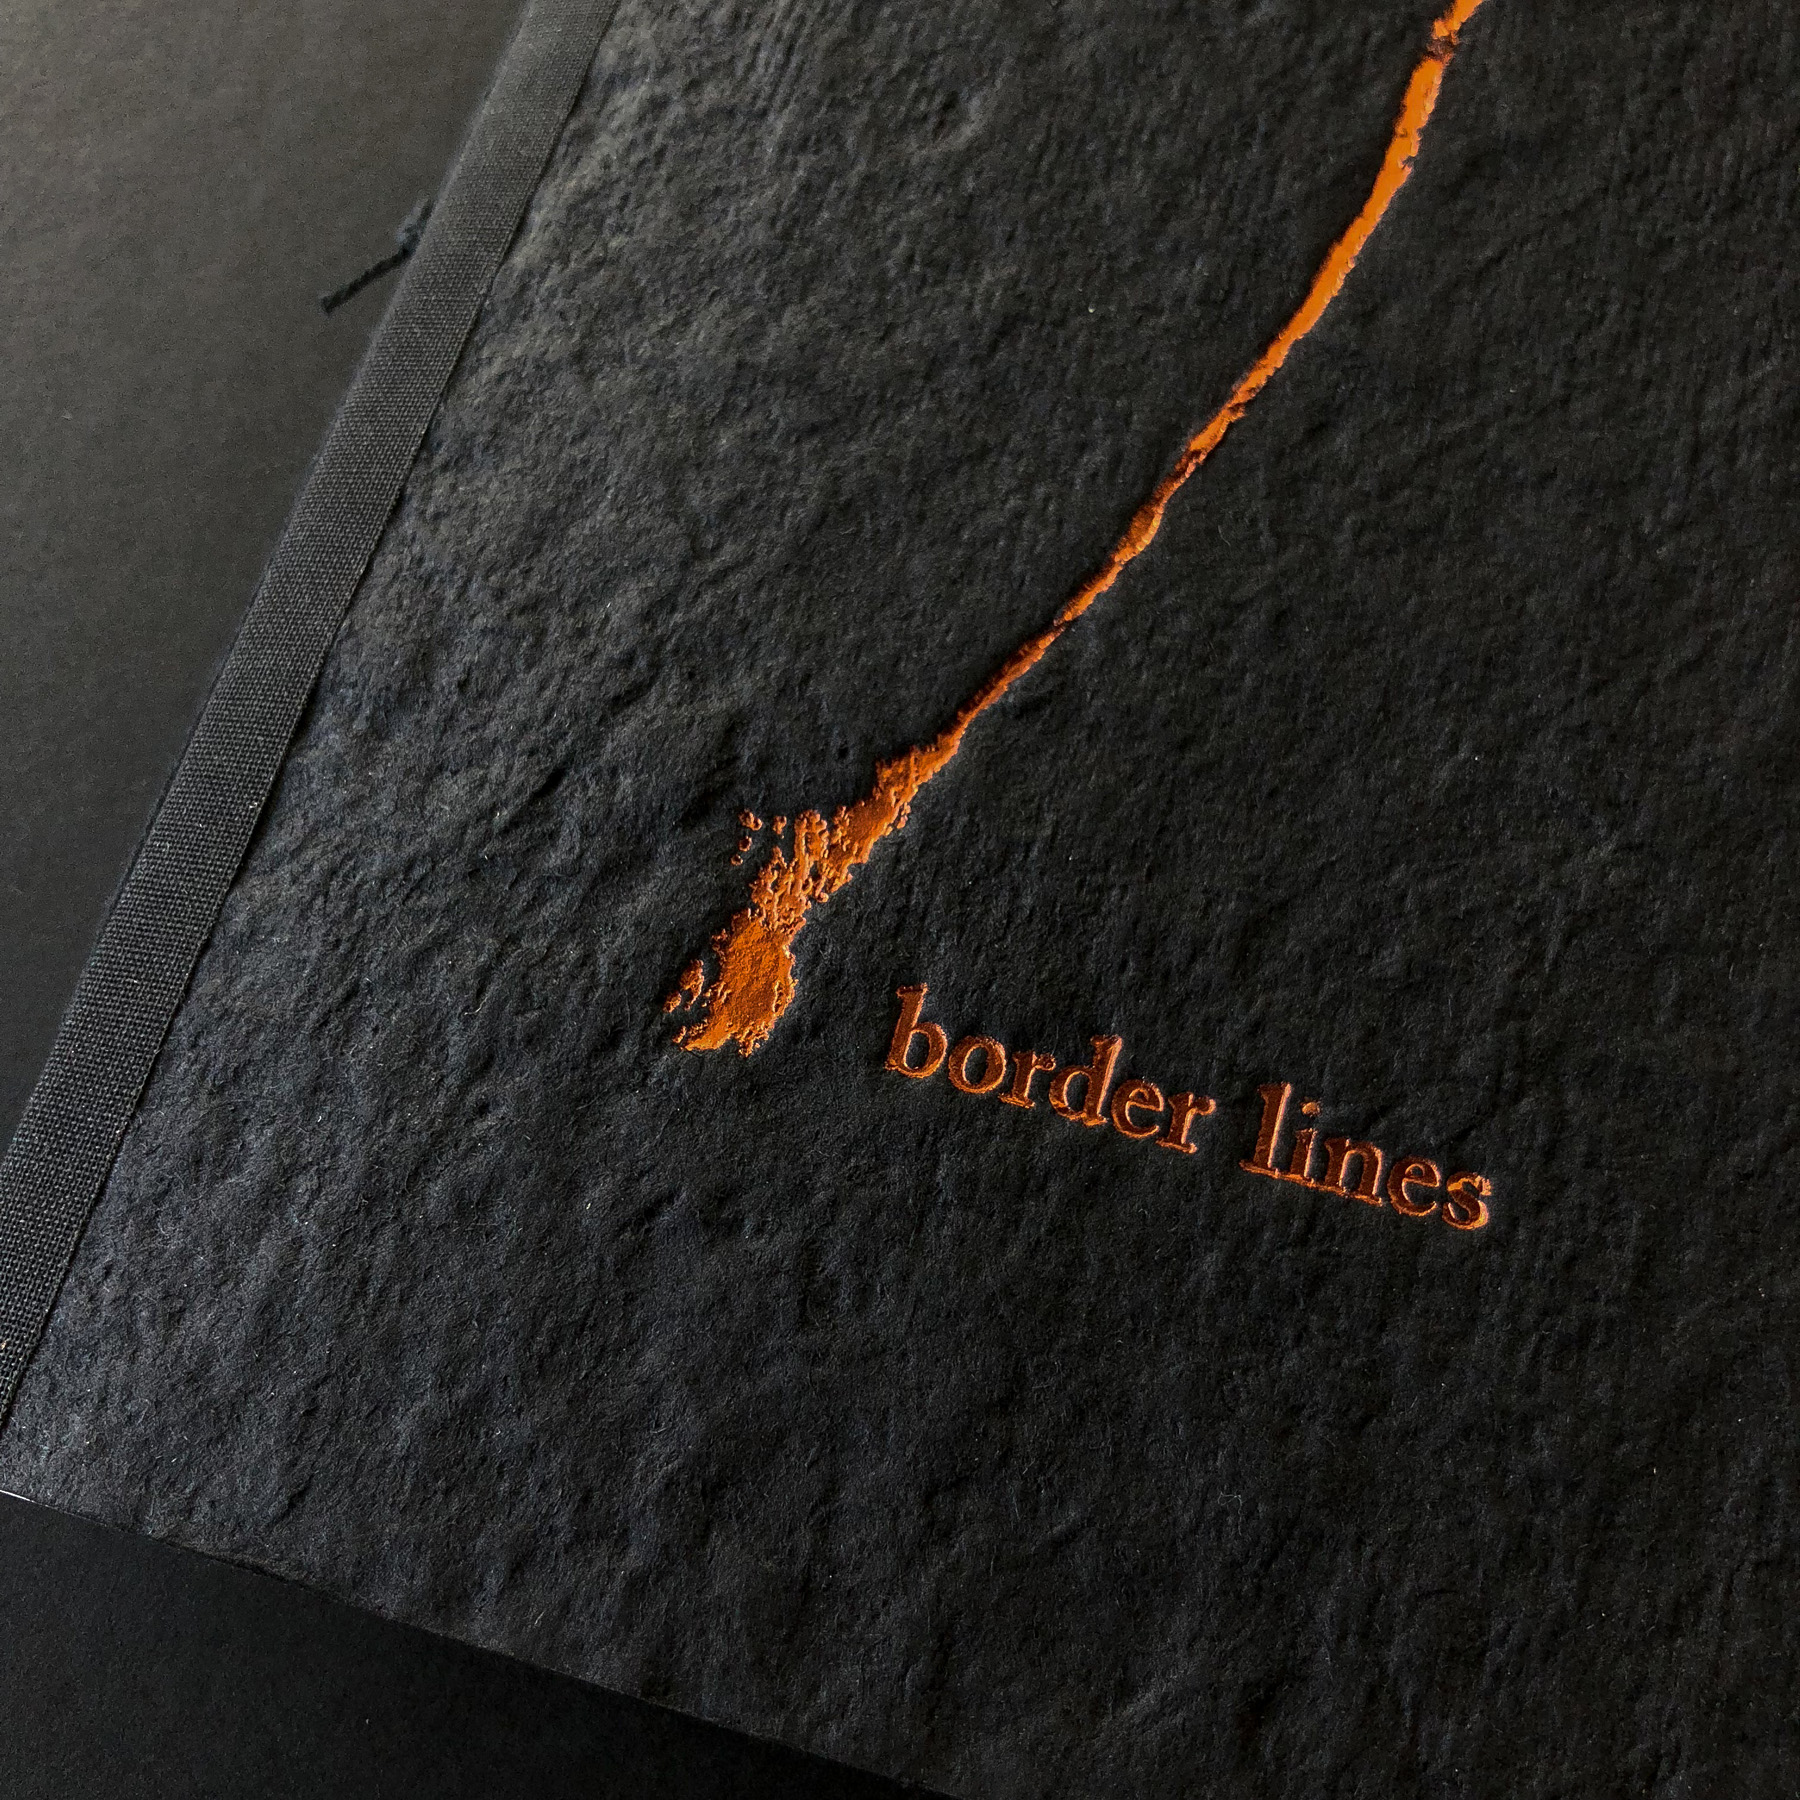 Copper foil stamped book by Lloyd Jones on handmade paper cover 1